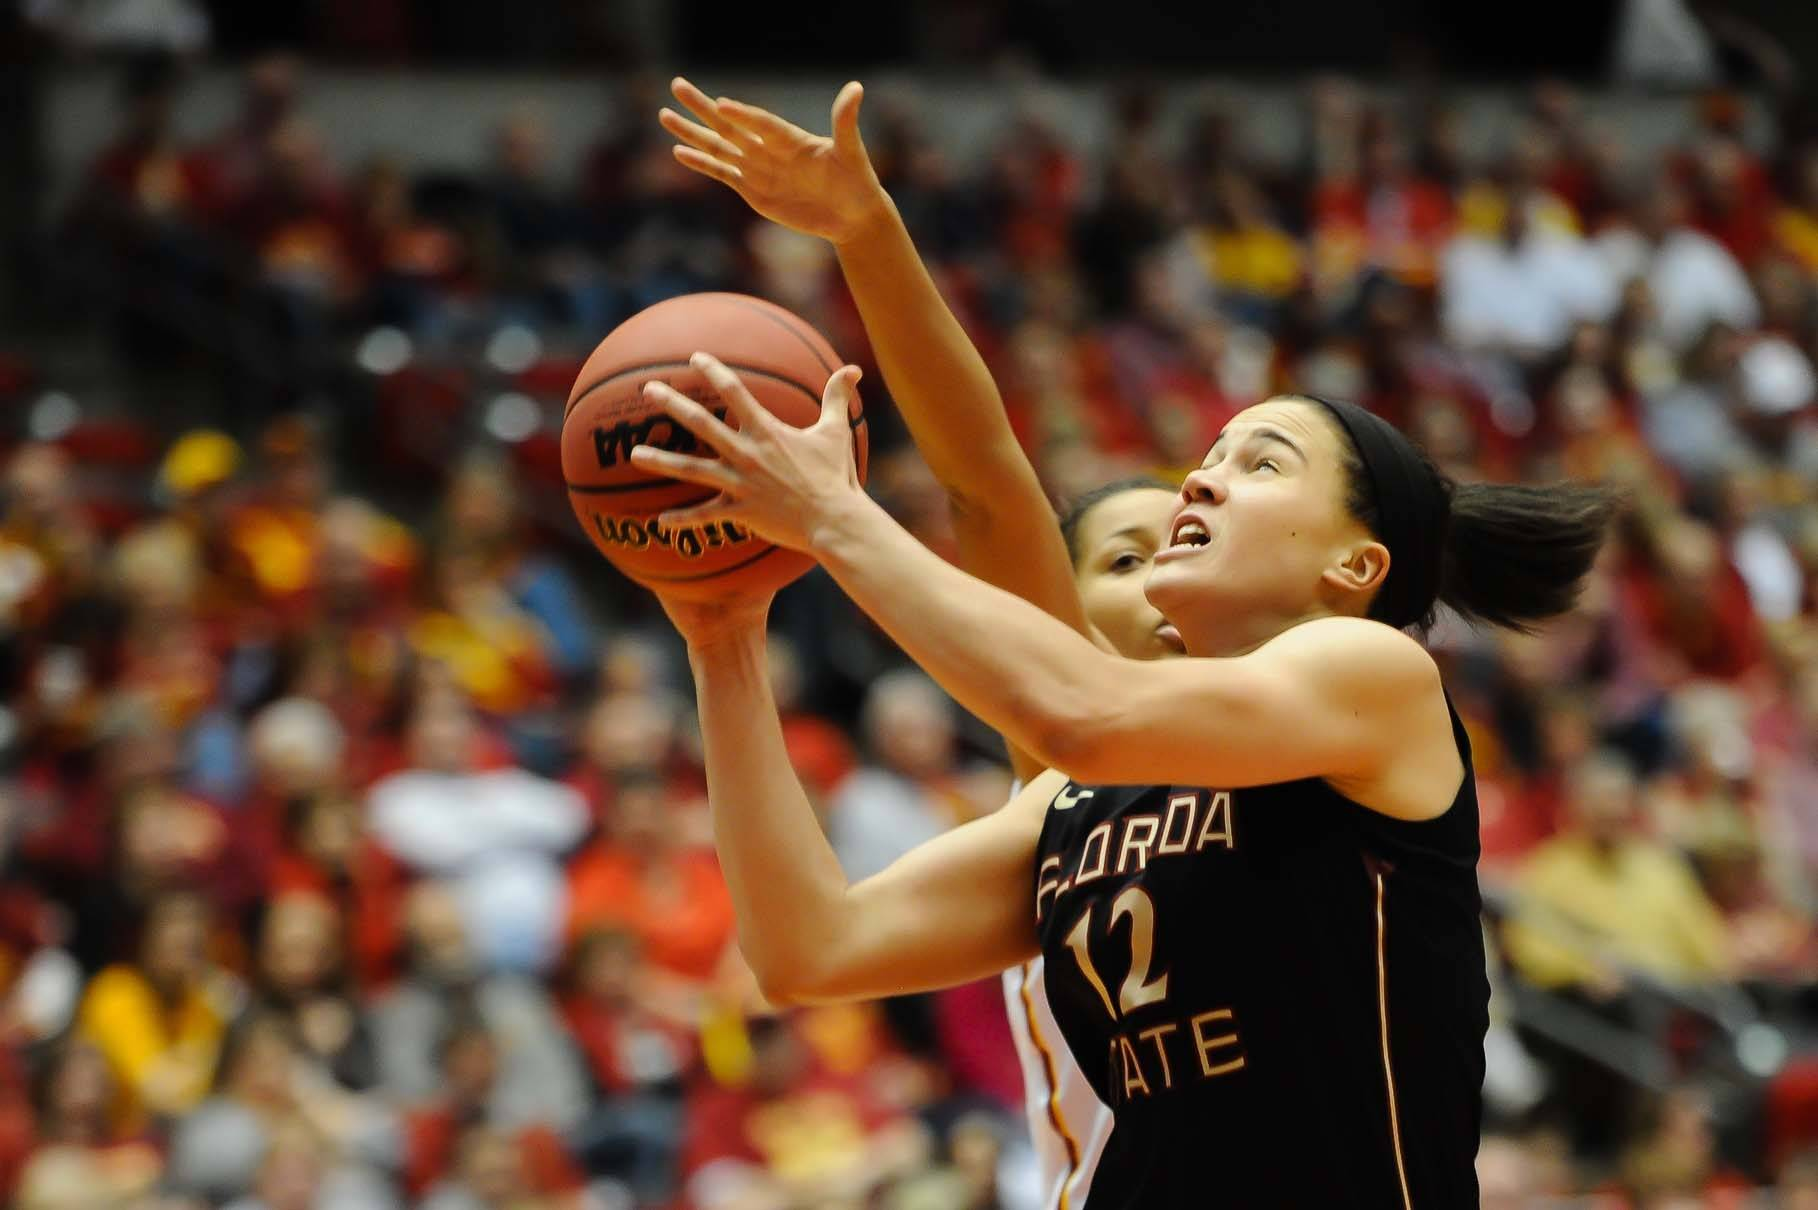 Mar 22, 2014; Ames, IA, USA; Florida State Seminoles guard Brittany Brown (12) drives to the basket against the Iowa State Cyclones. Mandatory Credit: Steven Branscombe-USA TODAY Sports